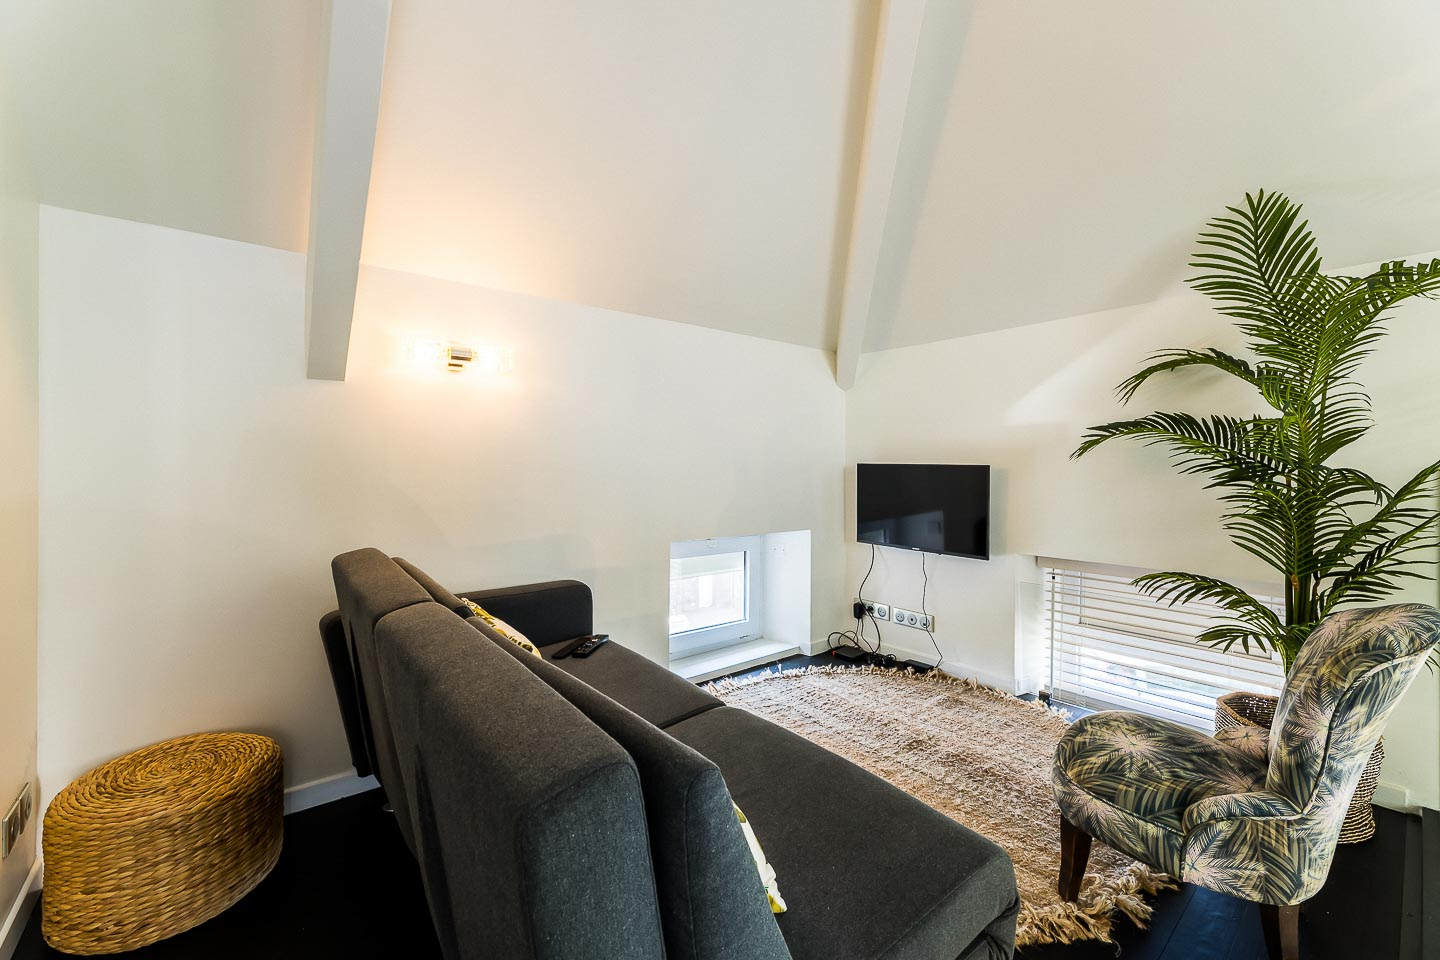 13 Location Biarritz ALMA